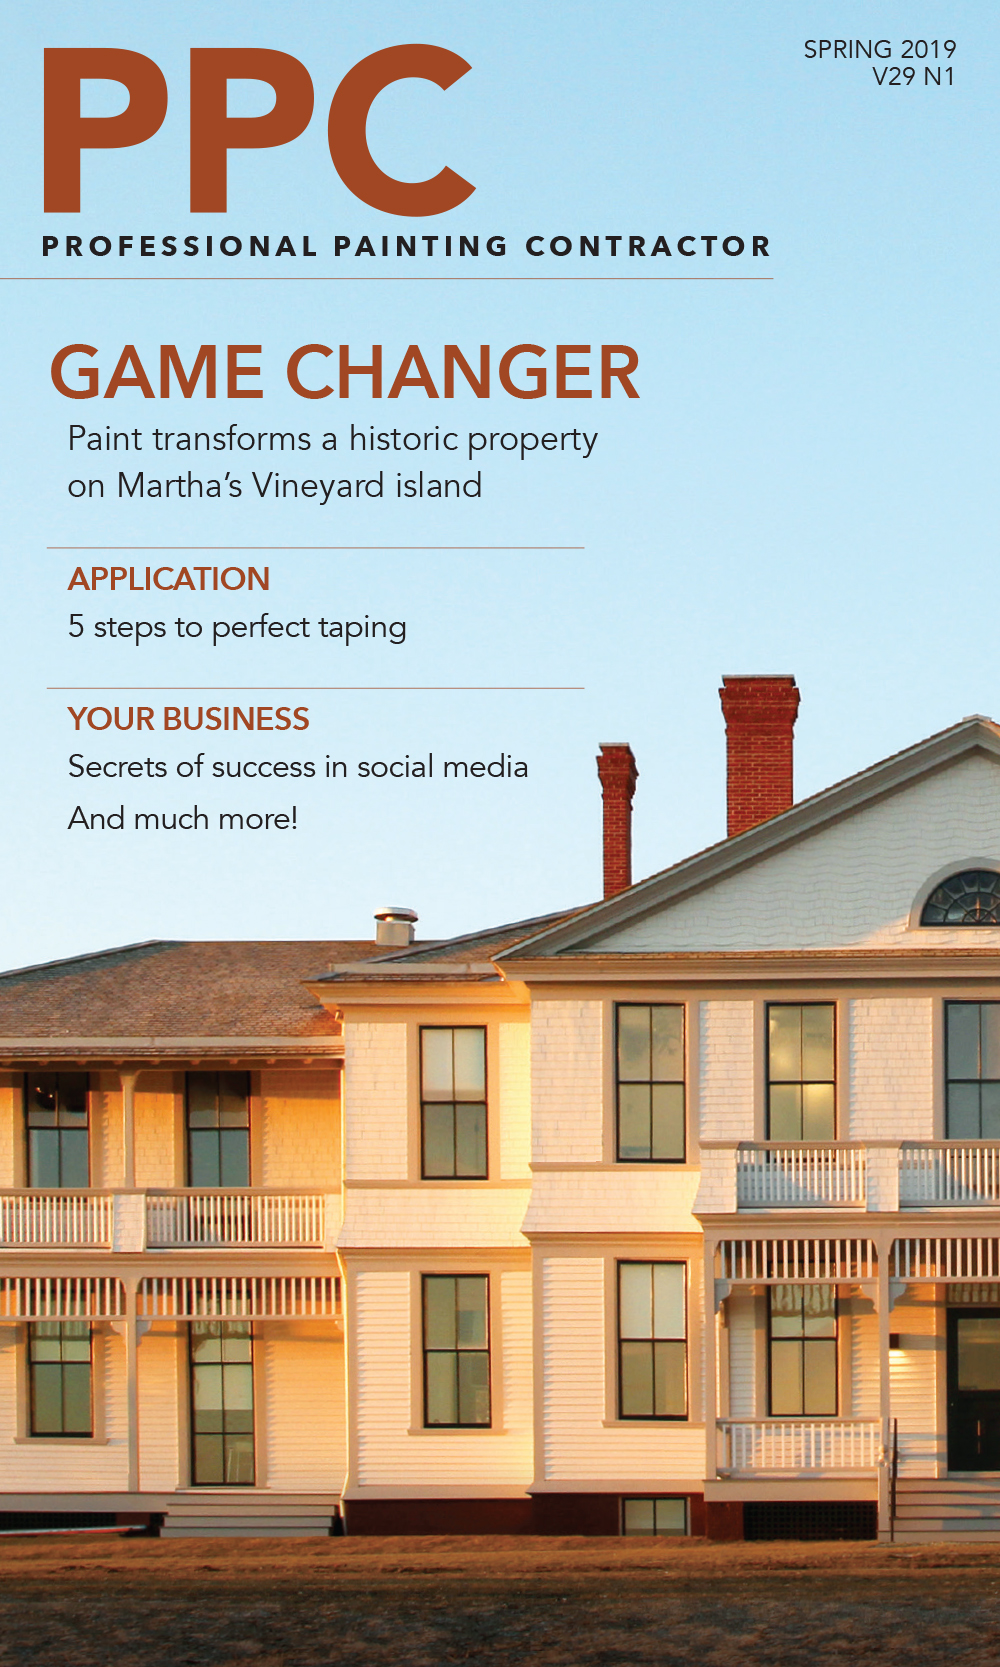 cover of spring 2019 issue of PPC magazine